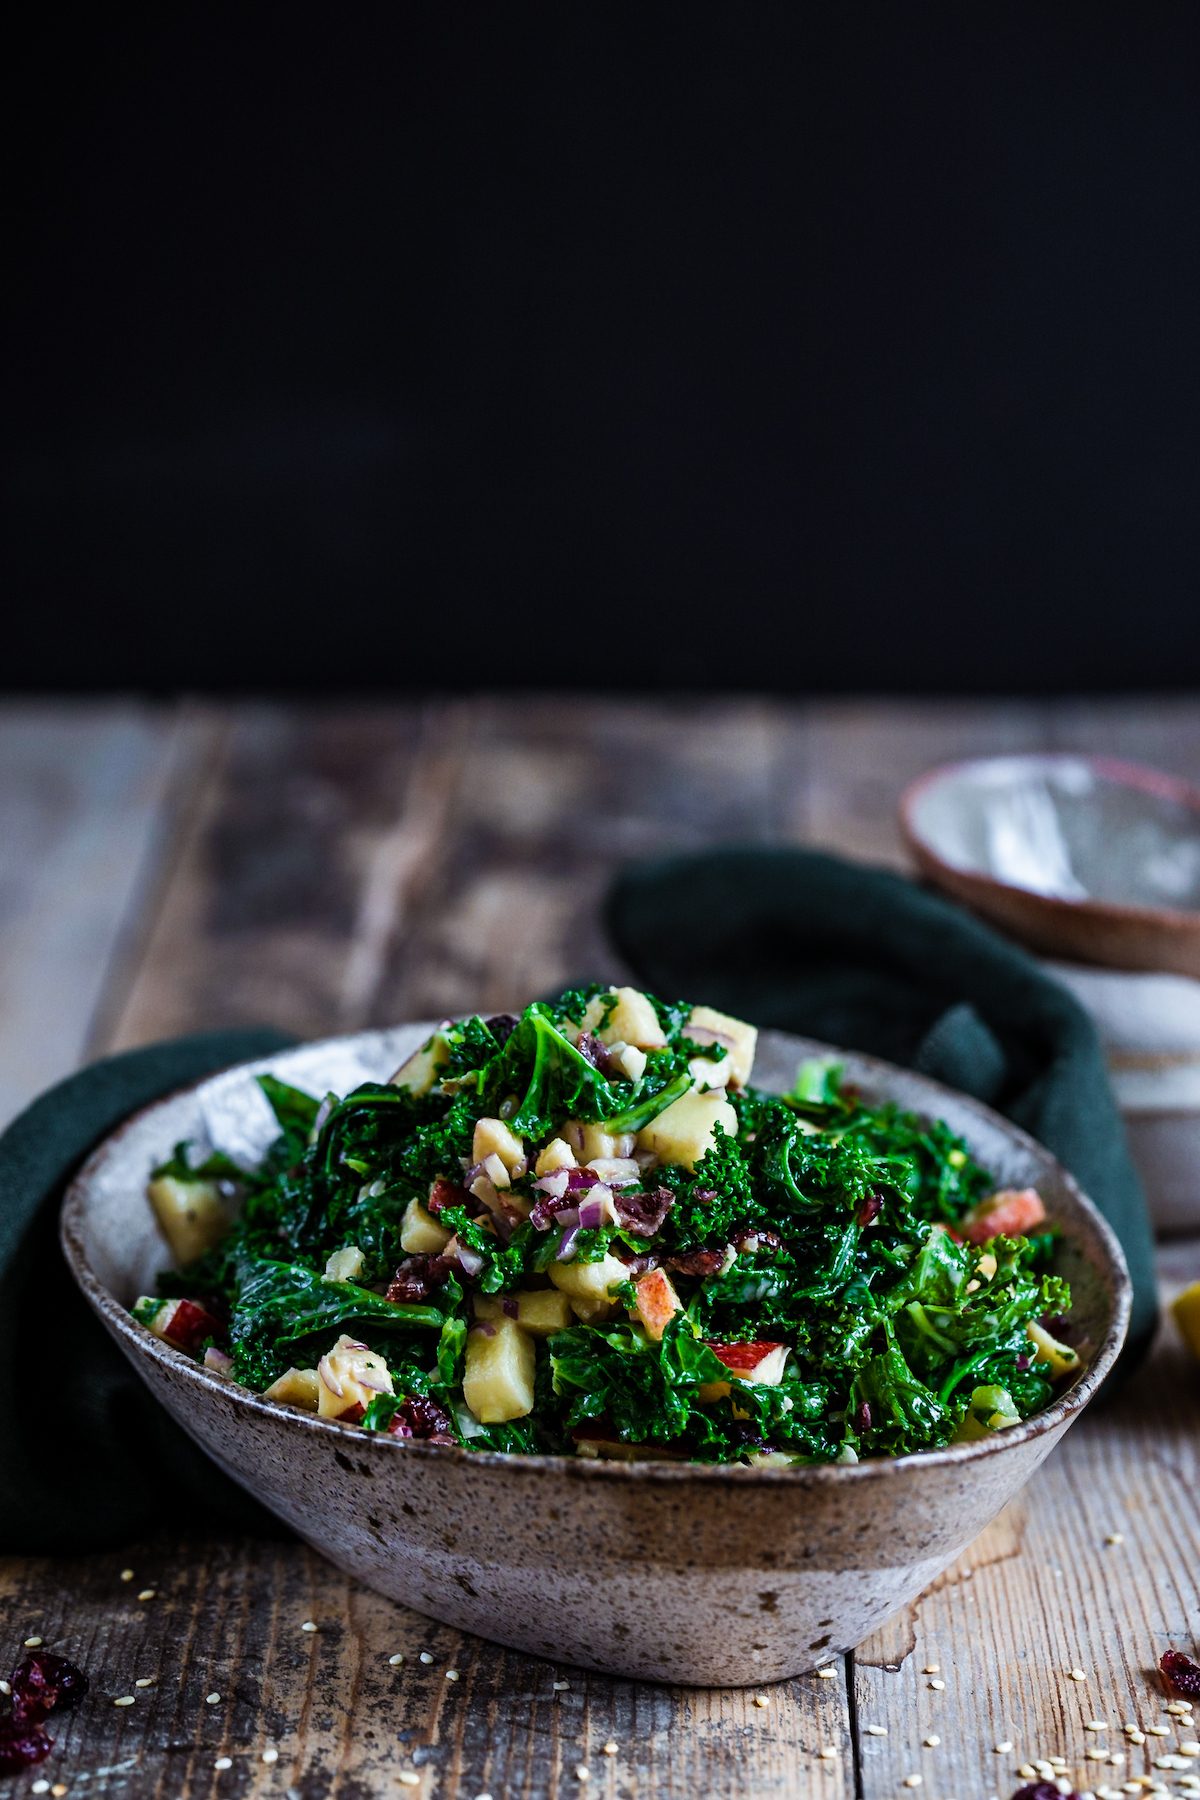 Cranberry & apple kale salad in a bowl on a wooden background.